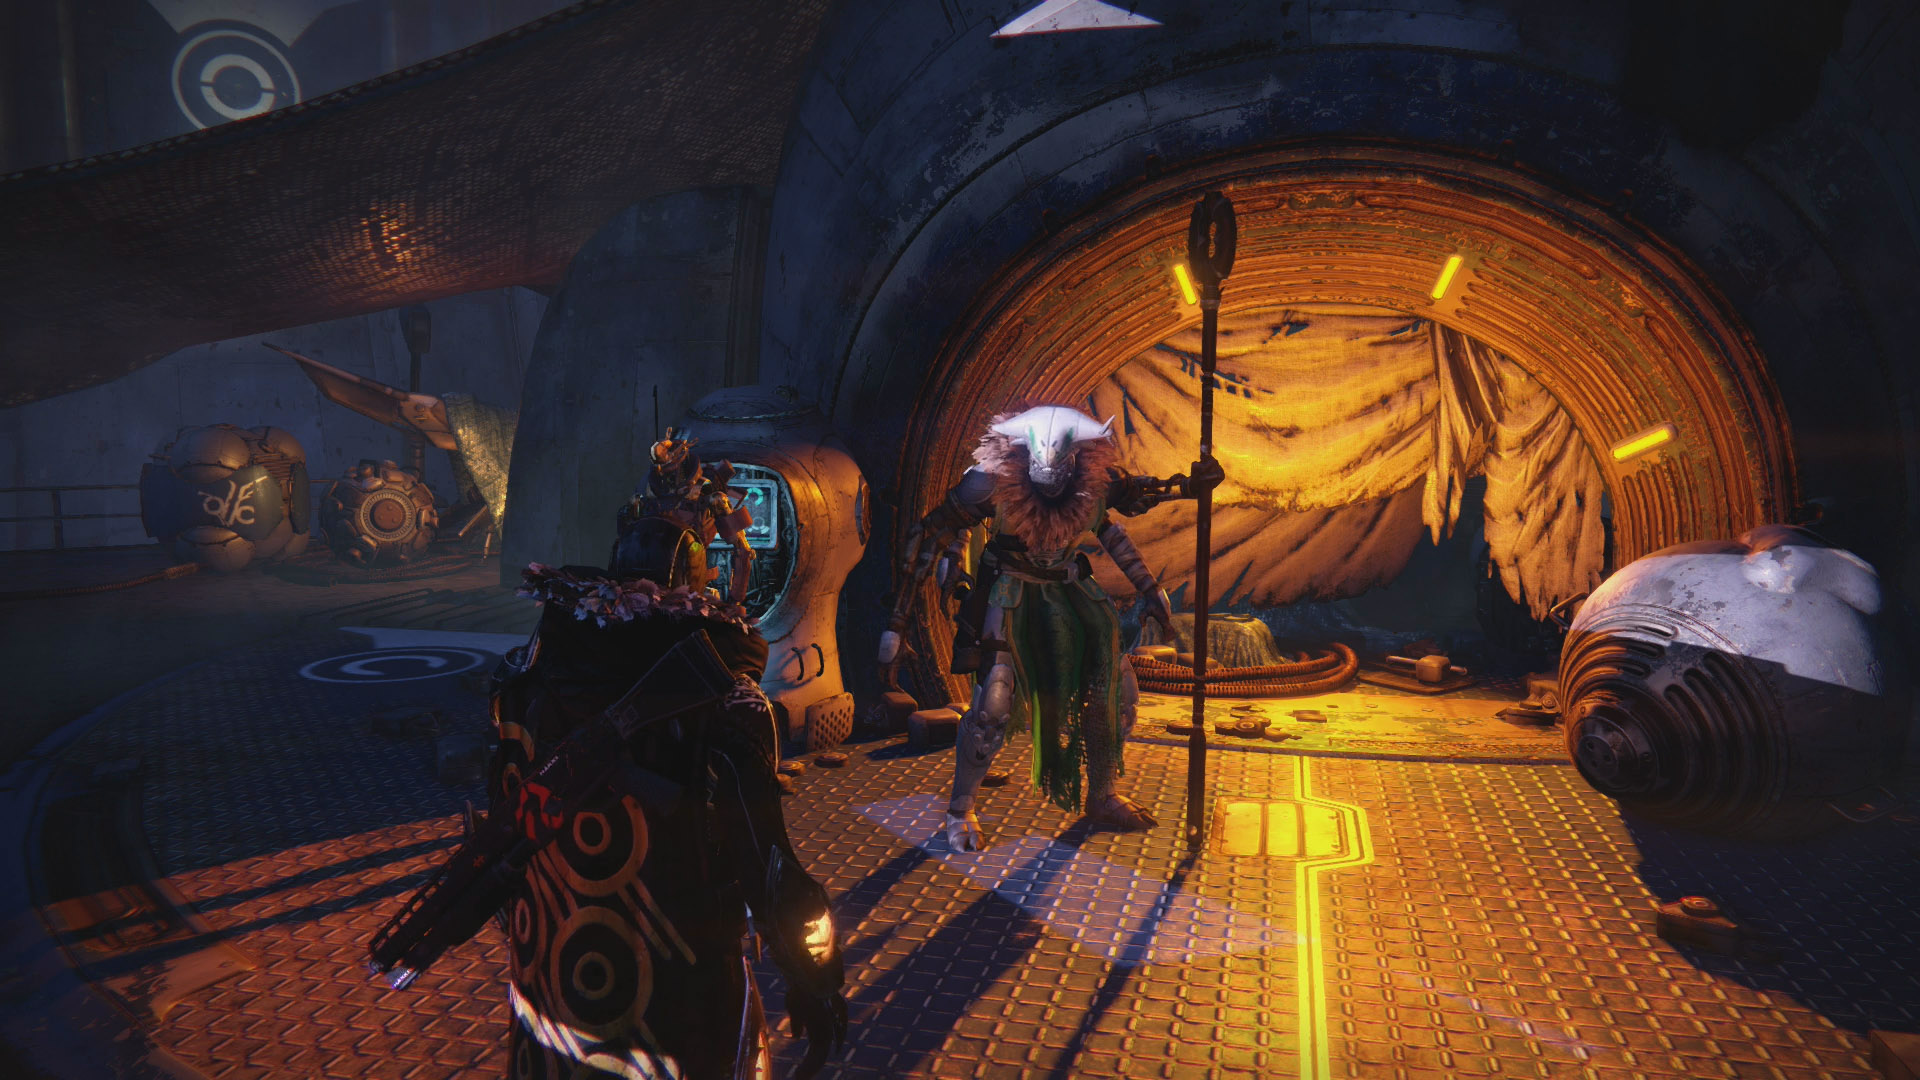 Visit Variks to obtain the At the Gates quest, or buy the Dreadfang Sword directly.